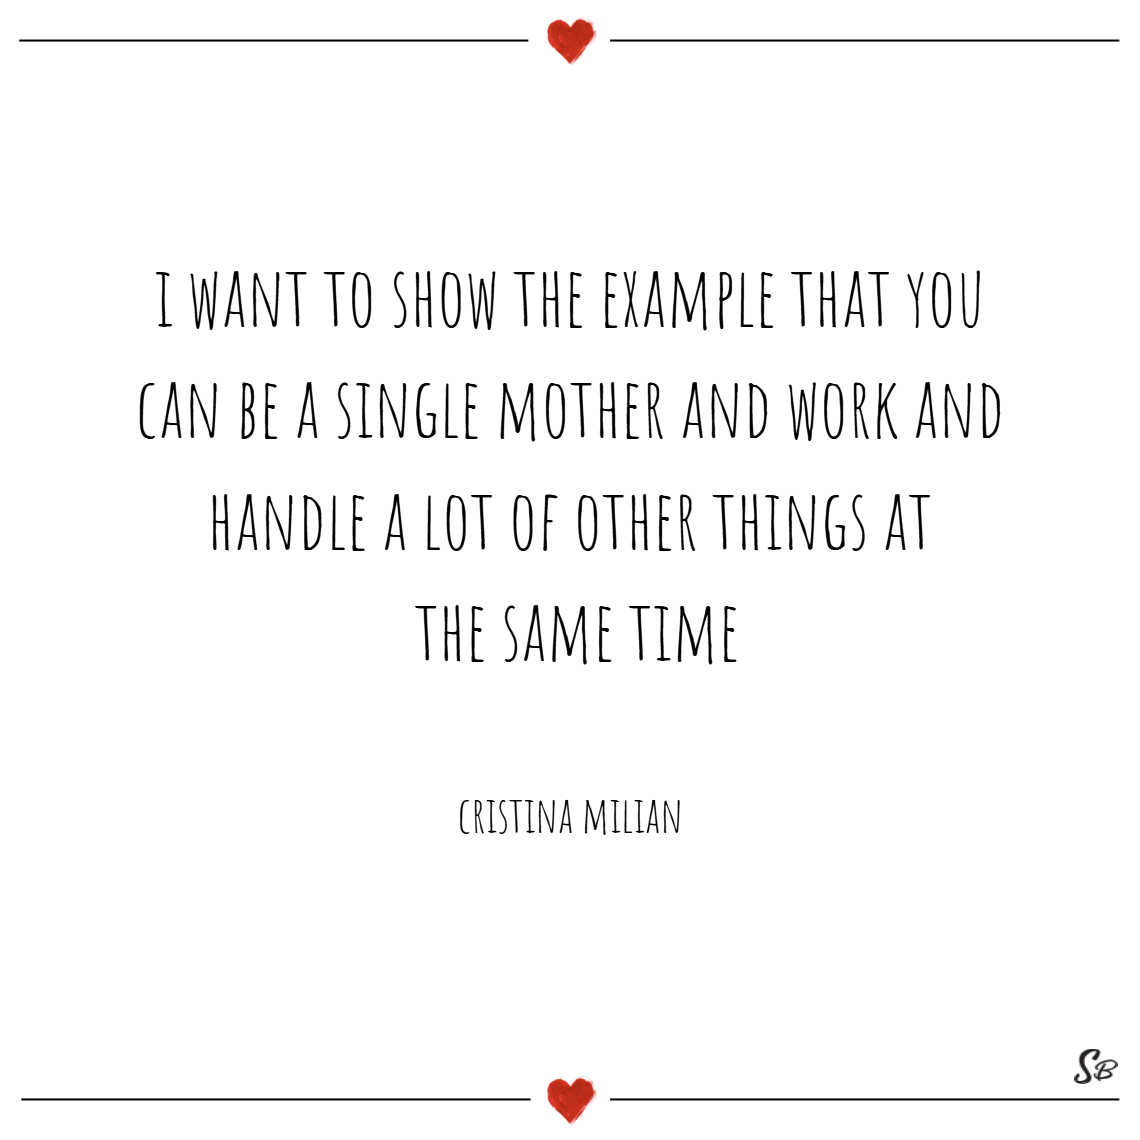 I want to show the example that you can be a single mother and work and handle a lot of other things at the same time. – christina milian